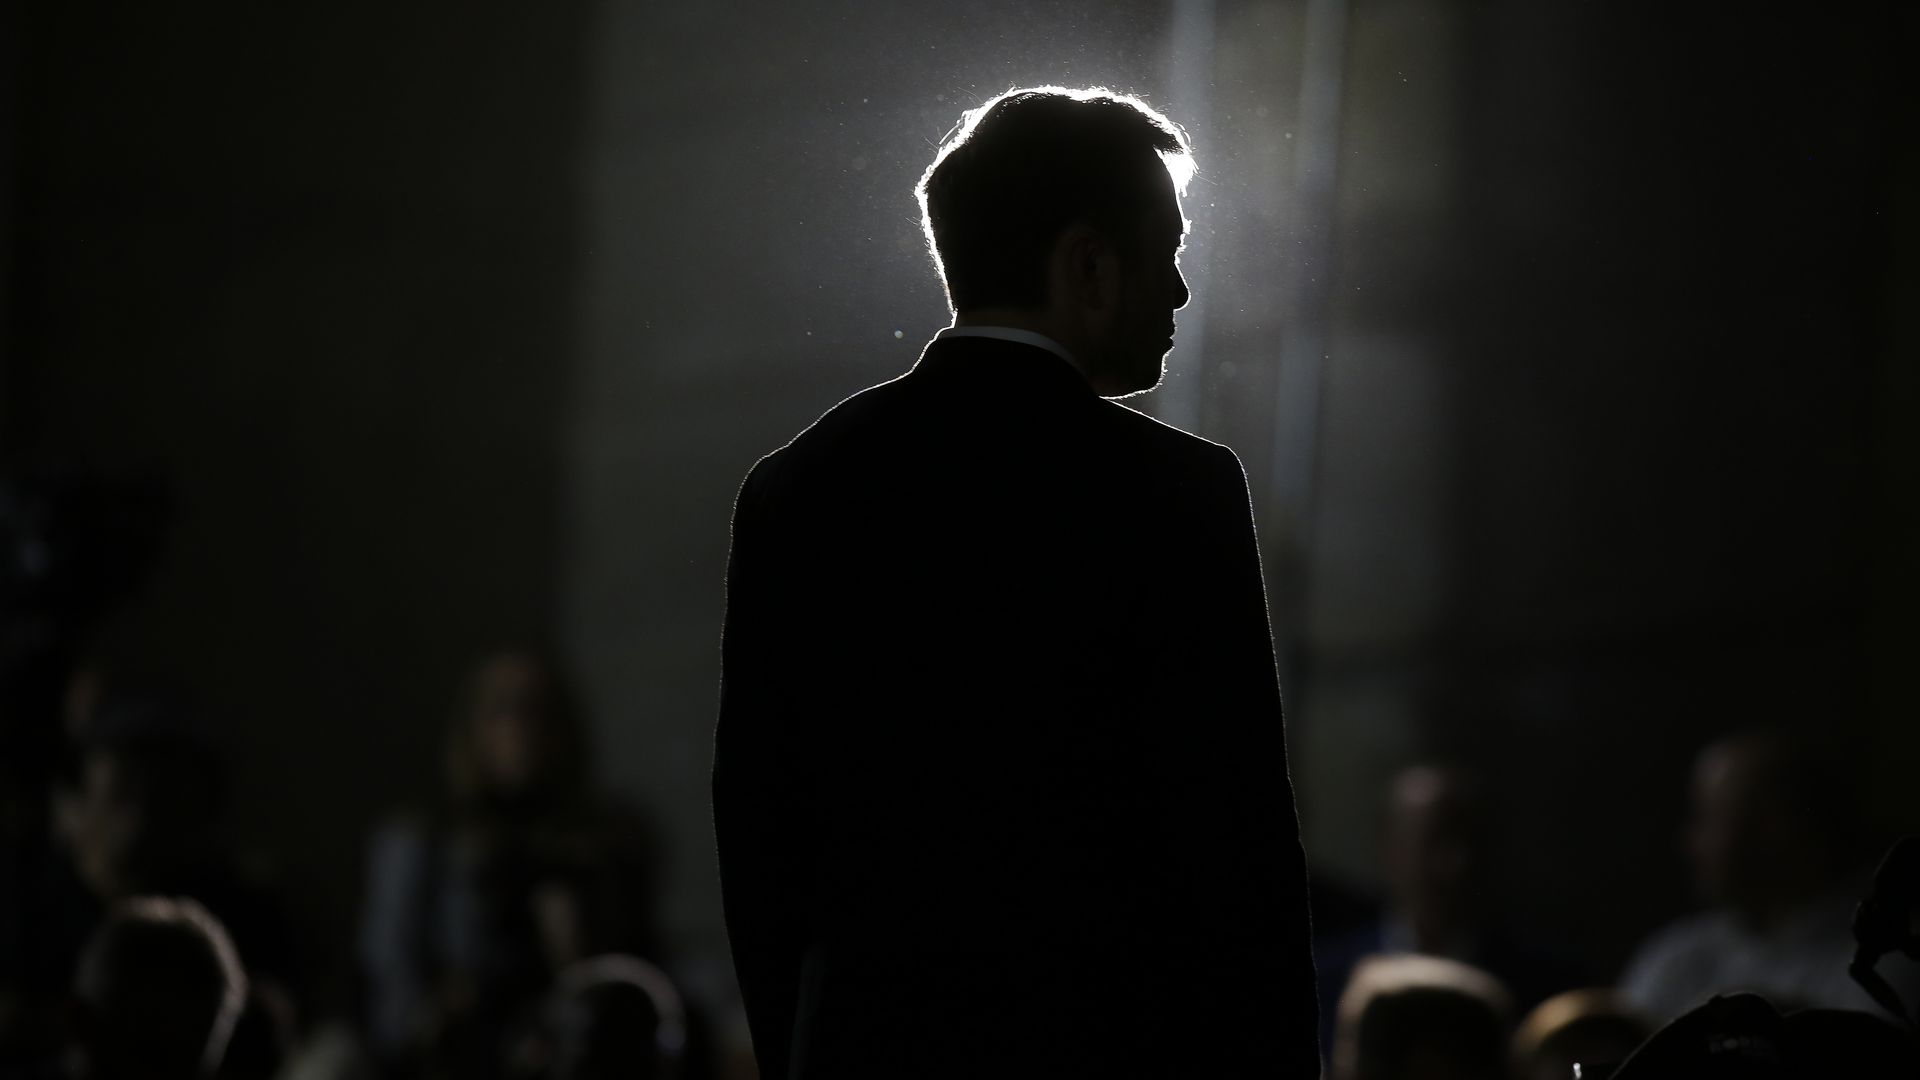 The silhouette of Elon Musk.